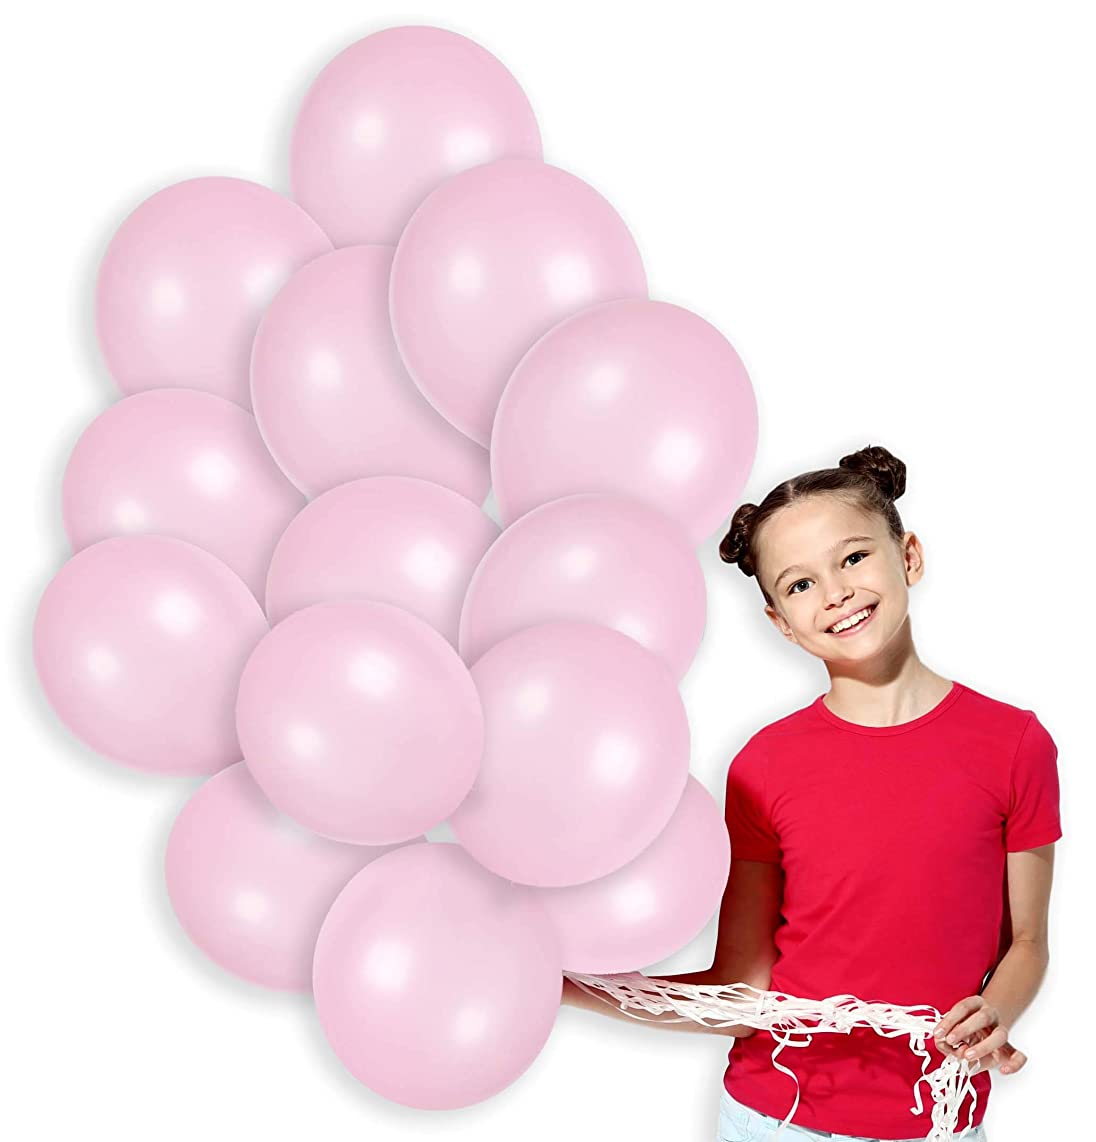 Light Pink Metallic Pastel Balloons Kit Decorations for Unicorn Birthday Girls Baby Shower Party Balloons Arch (100 Pack)